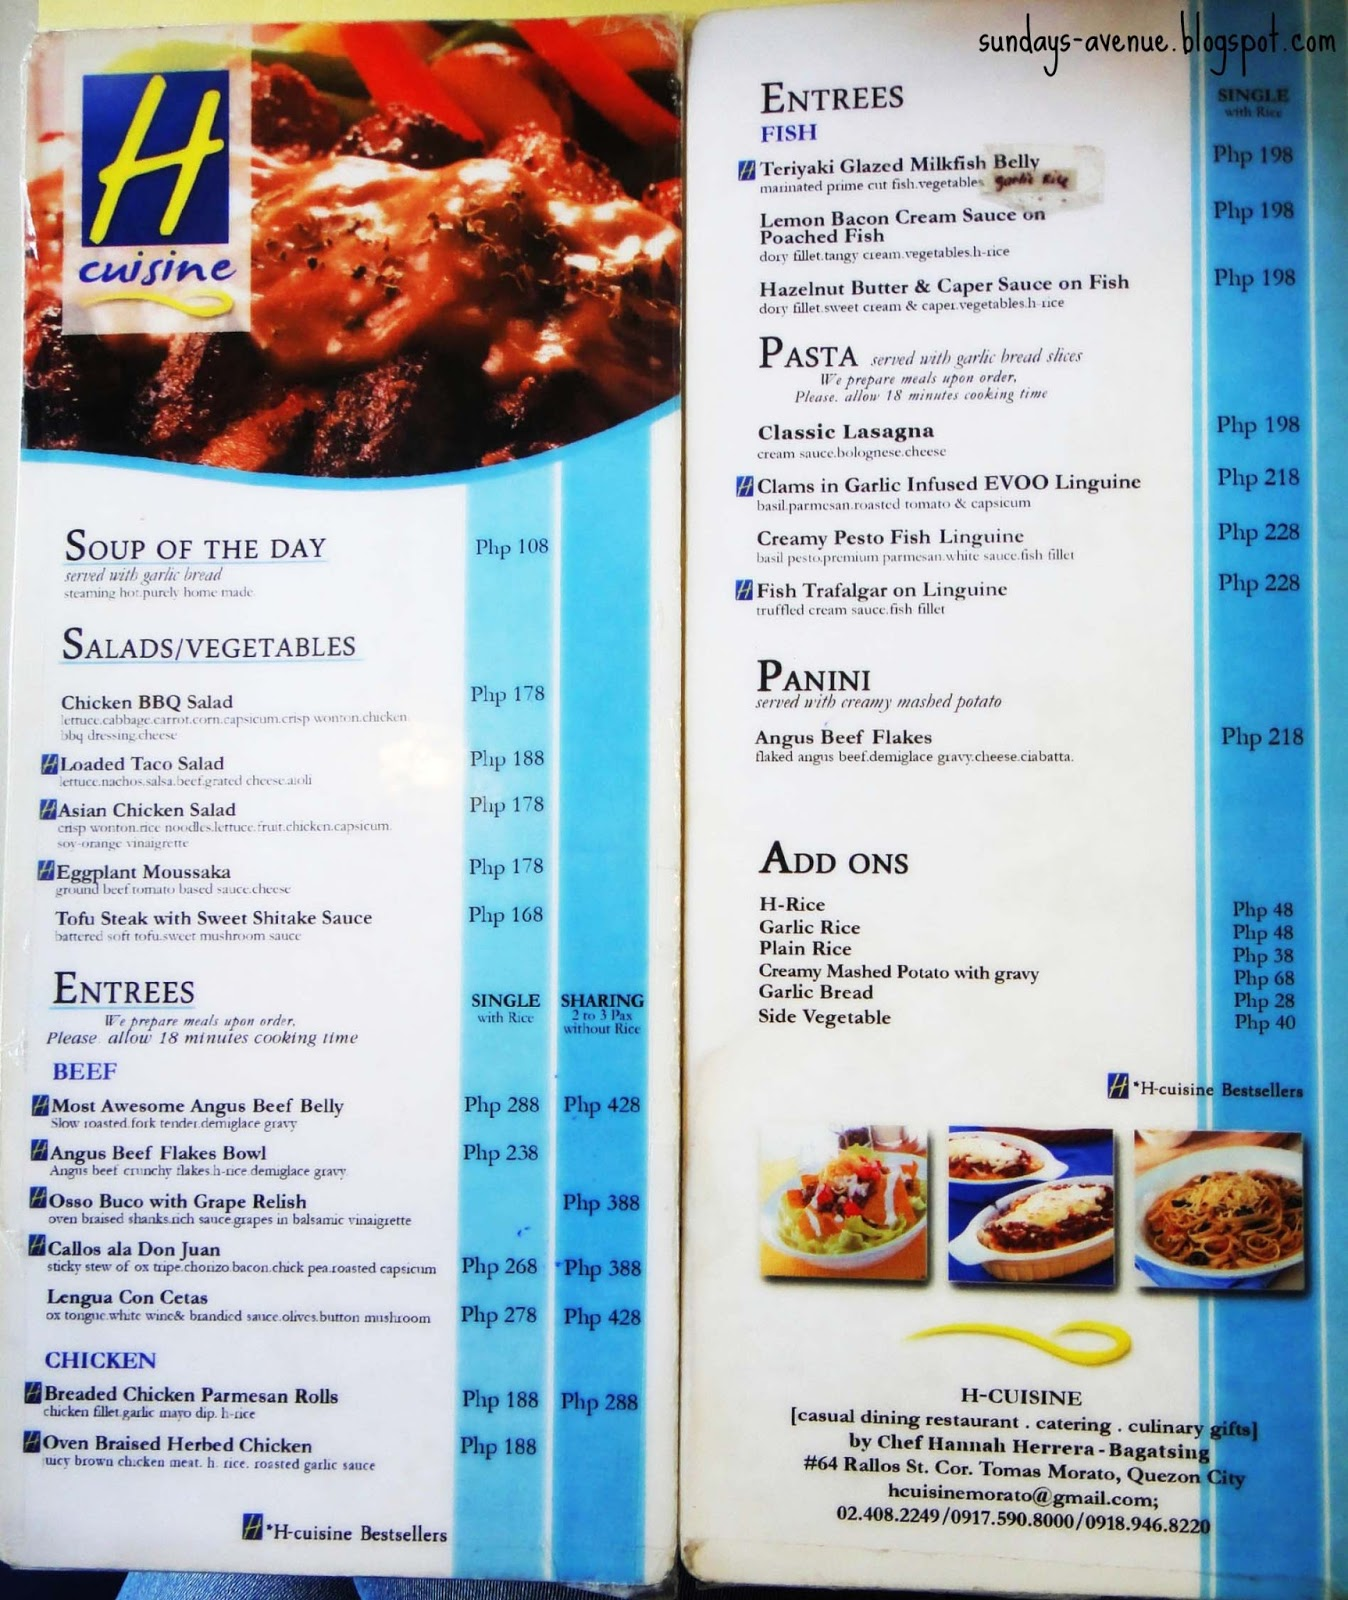 Sunday 39 s avenue h cuisine home of the most awesome angus beef belly for H cuisine tomas morato